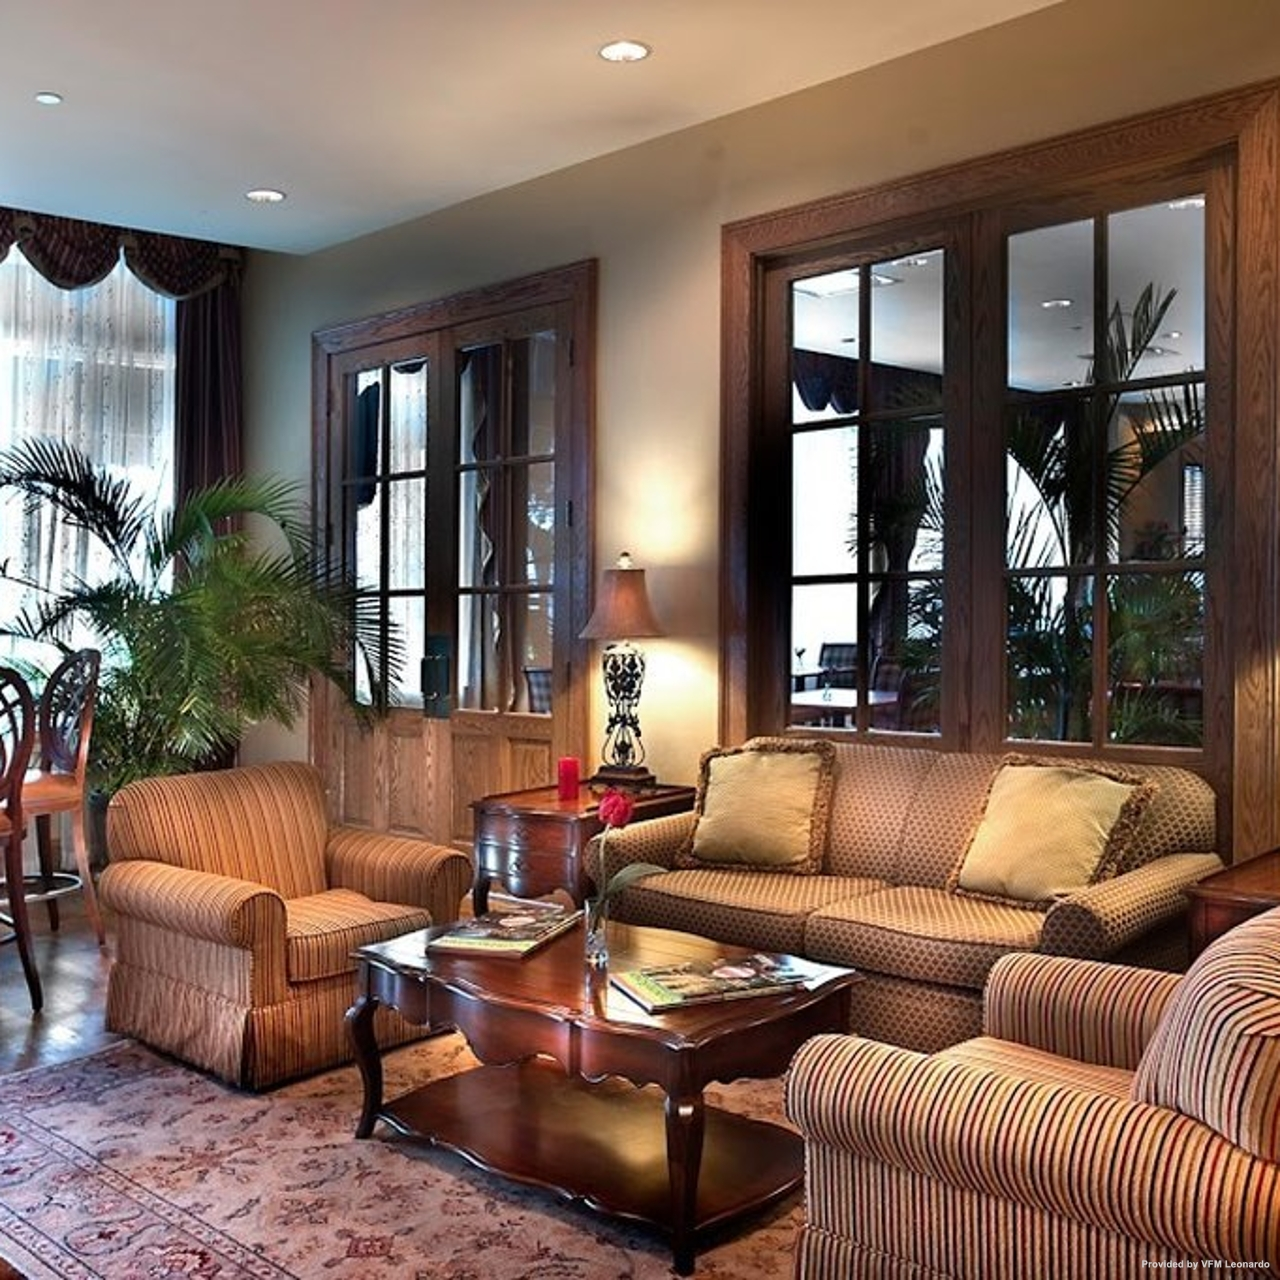 Natchez Grand Hotel United States Of America At Hrs With Free Services